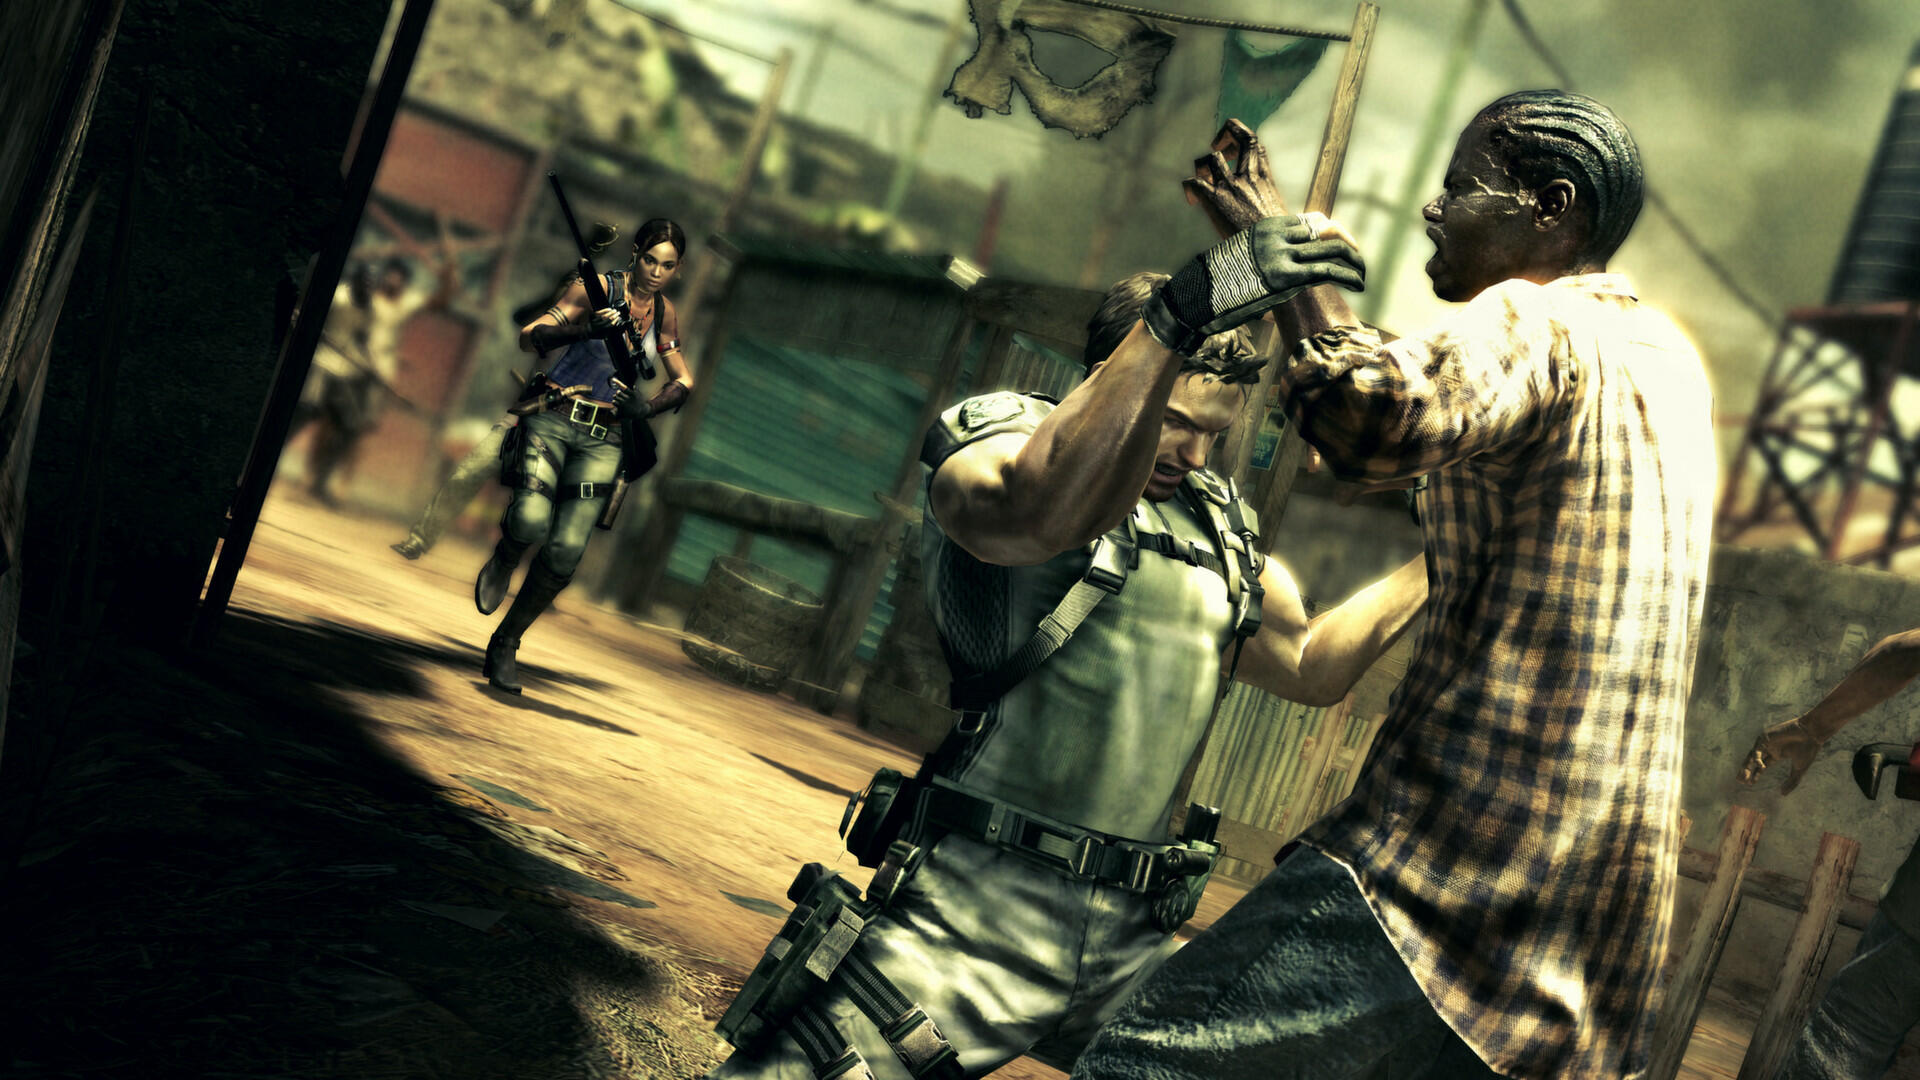 Resident Evil 5 And 6 Are Both Coming To Nintendo Switch This Fall